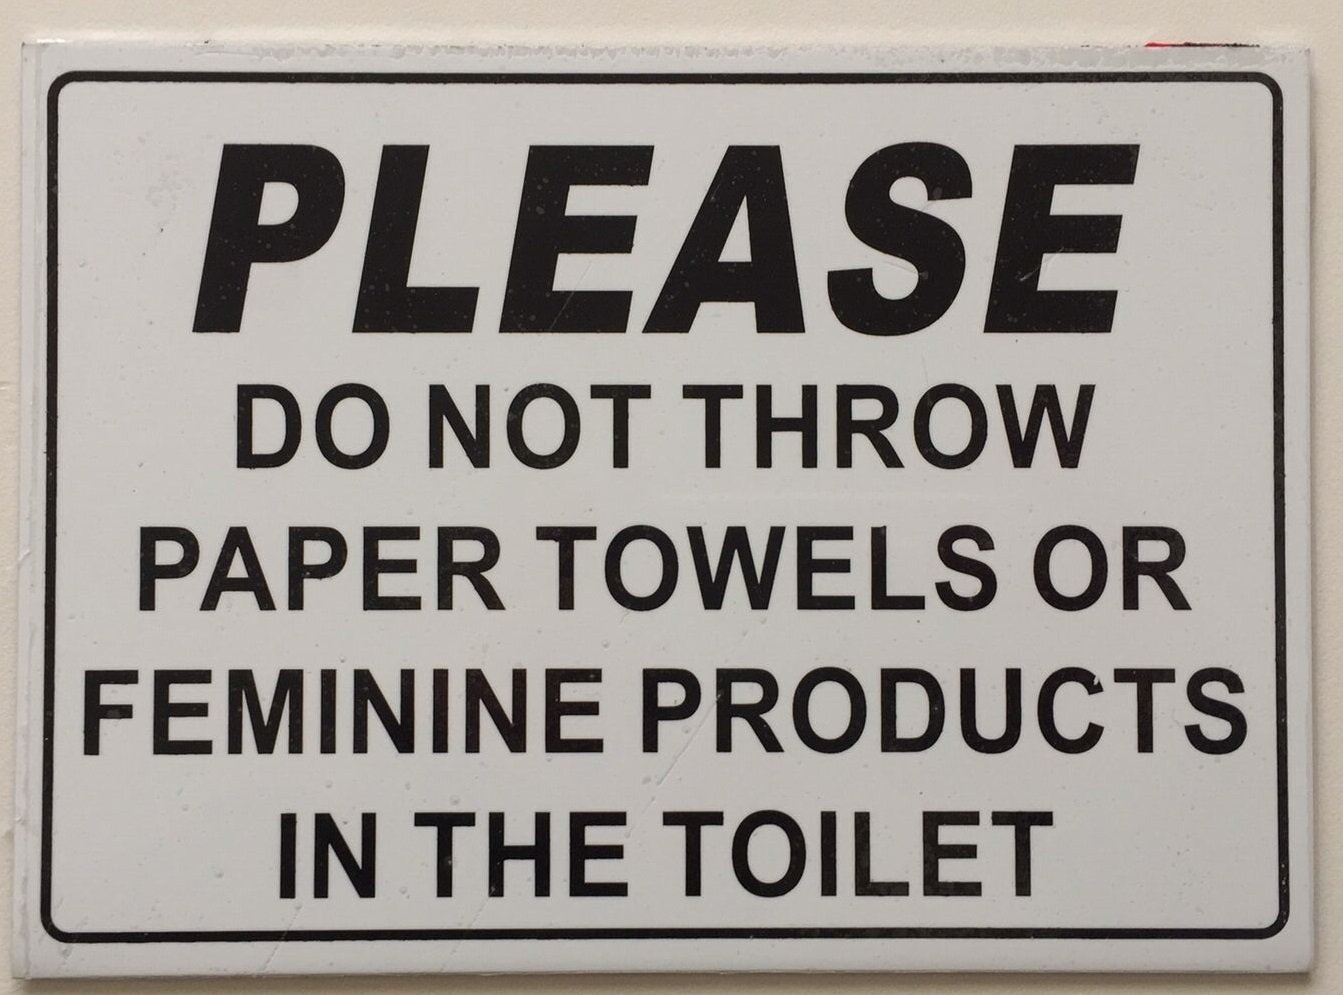 PLEASE DO NOT THROW PAPER TOWELS OR FEMININE PRODUCTS IN THE TOILET SIGN - Aluminium WITH TWO SIDED TAPE (5X7): Amazon.com: Industrial & Scientific